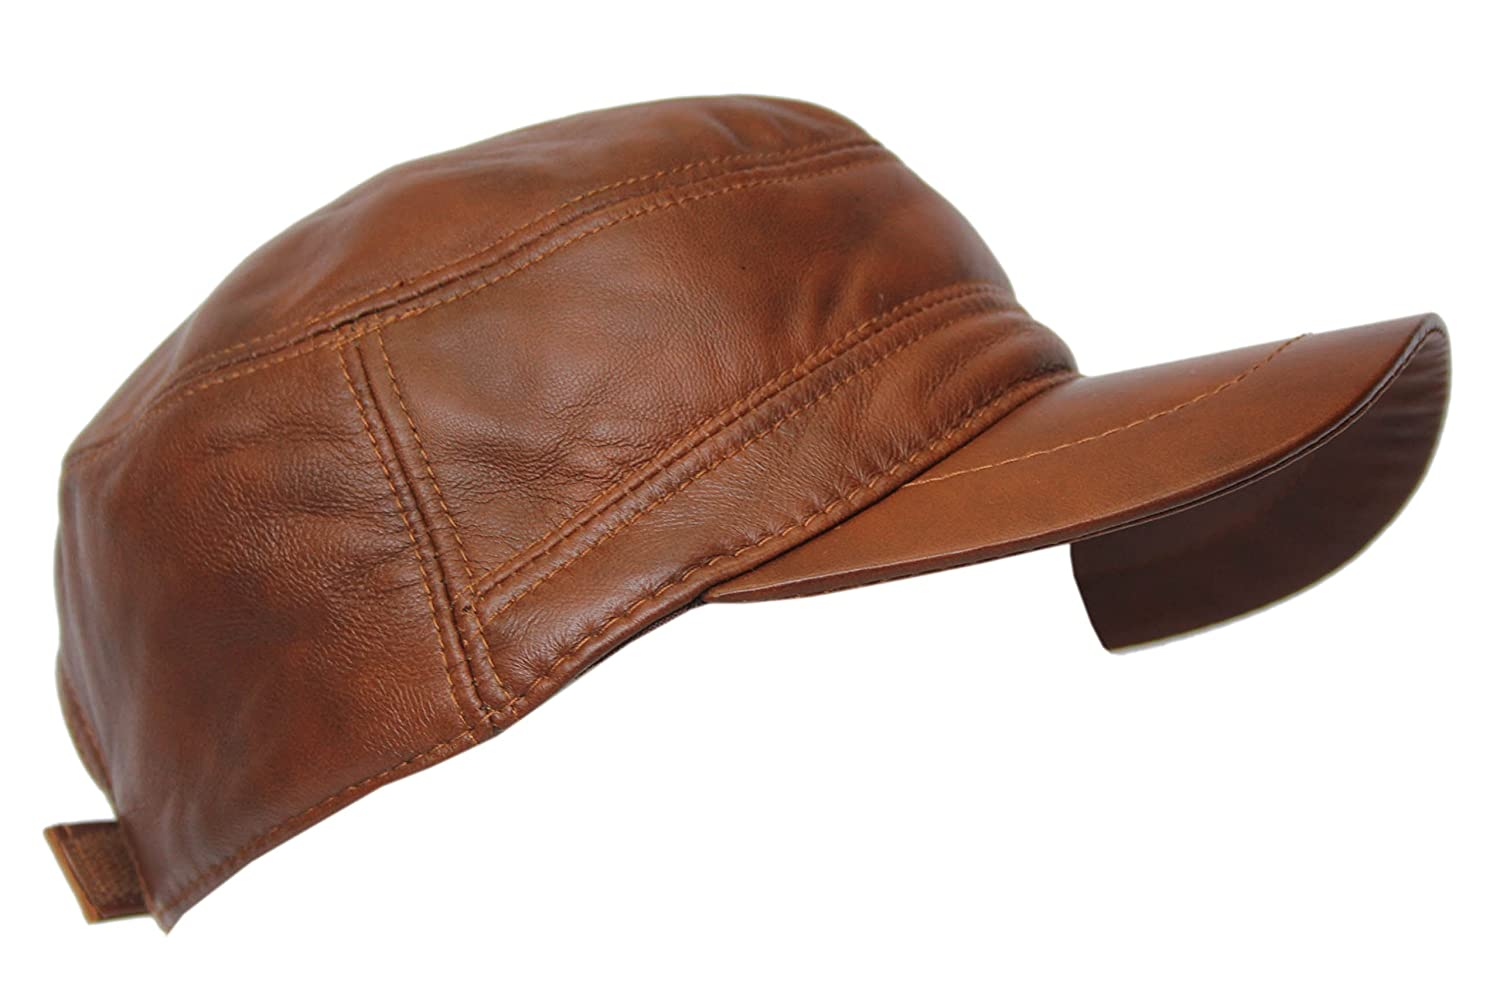 8366ccce4a449 Men s Real Leather Genuine Leather TAN Wax Cap Ivy Cap Gatsby Newsboy Golf  Driving Flat Hat  Amazon.co.uk  Clothing